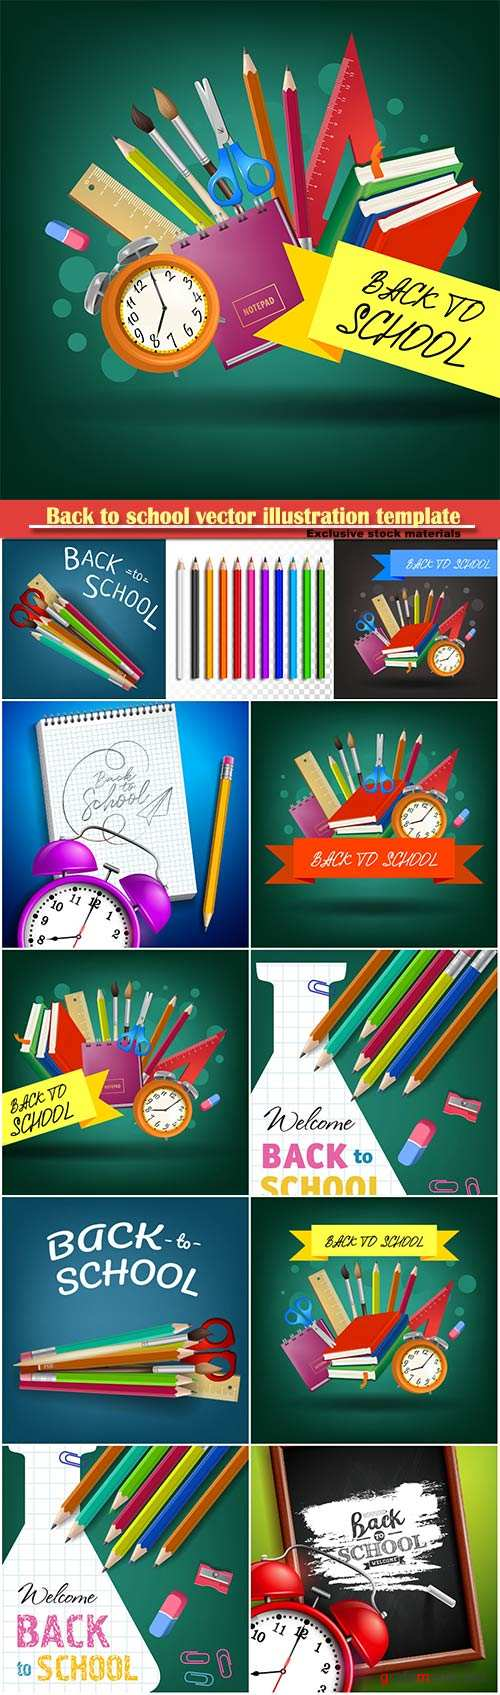 Back to school vector illustration template # 11